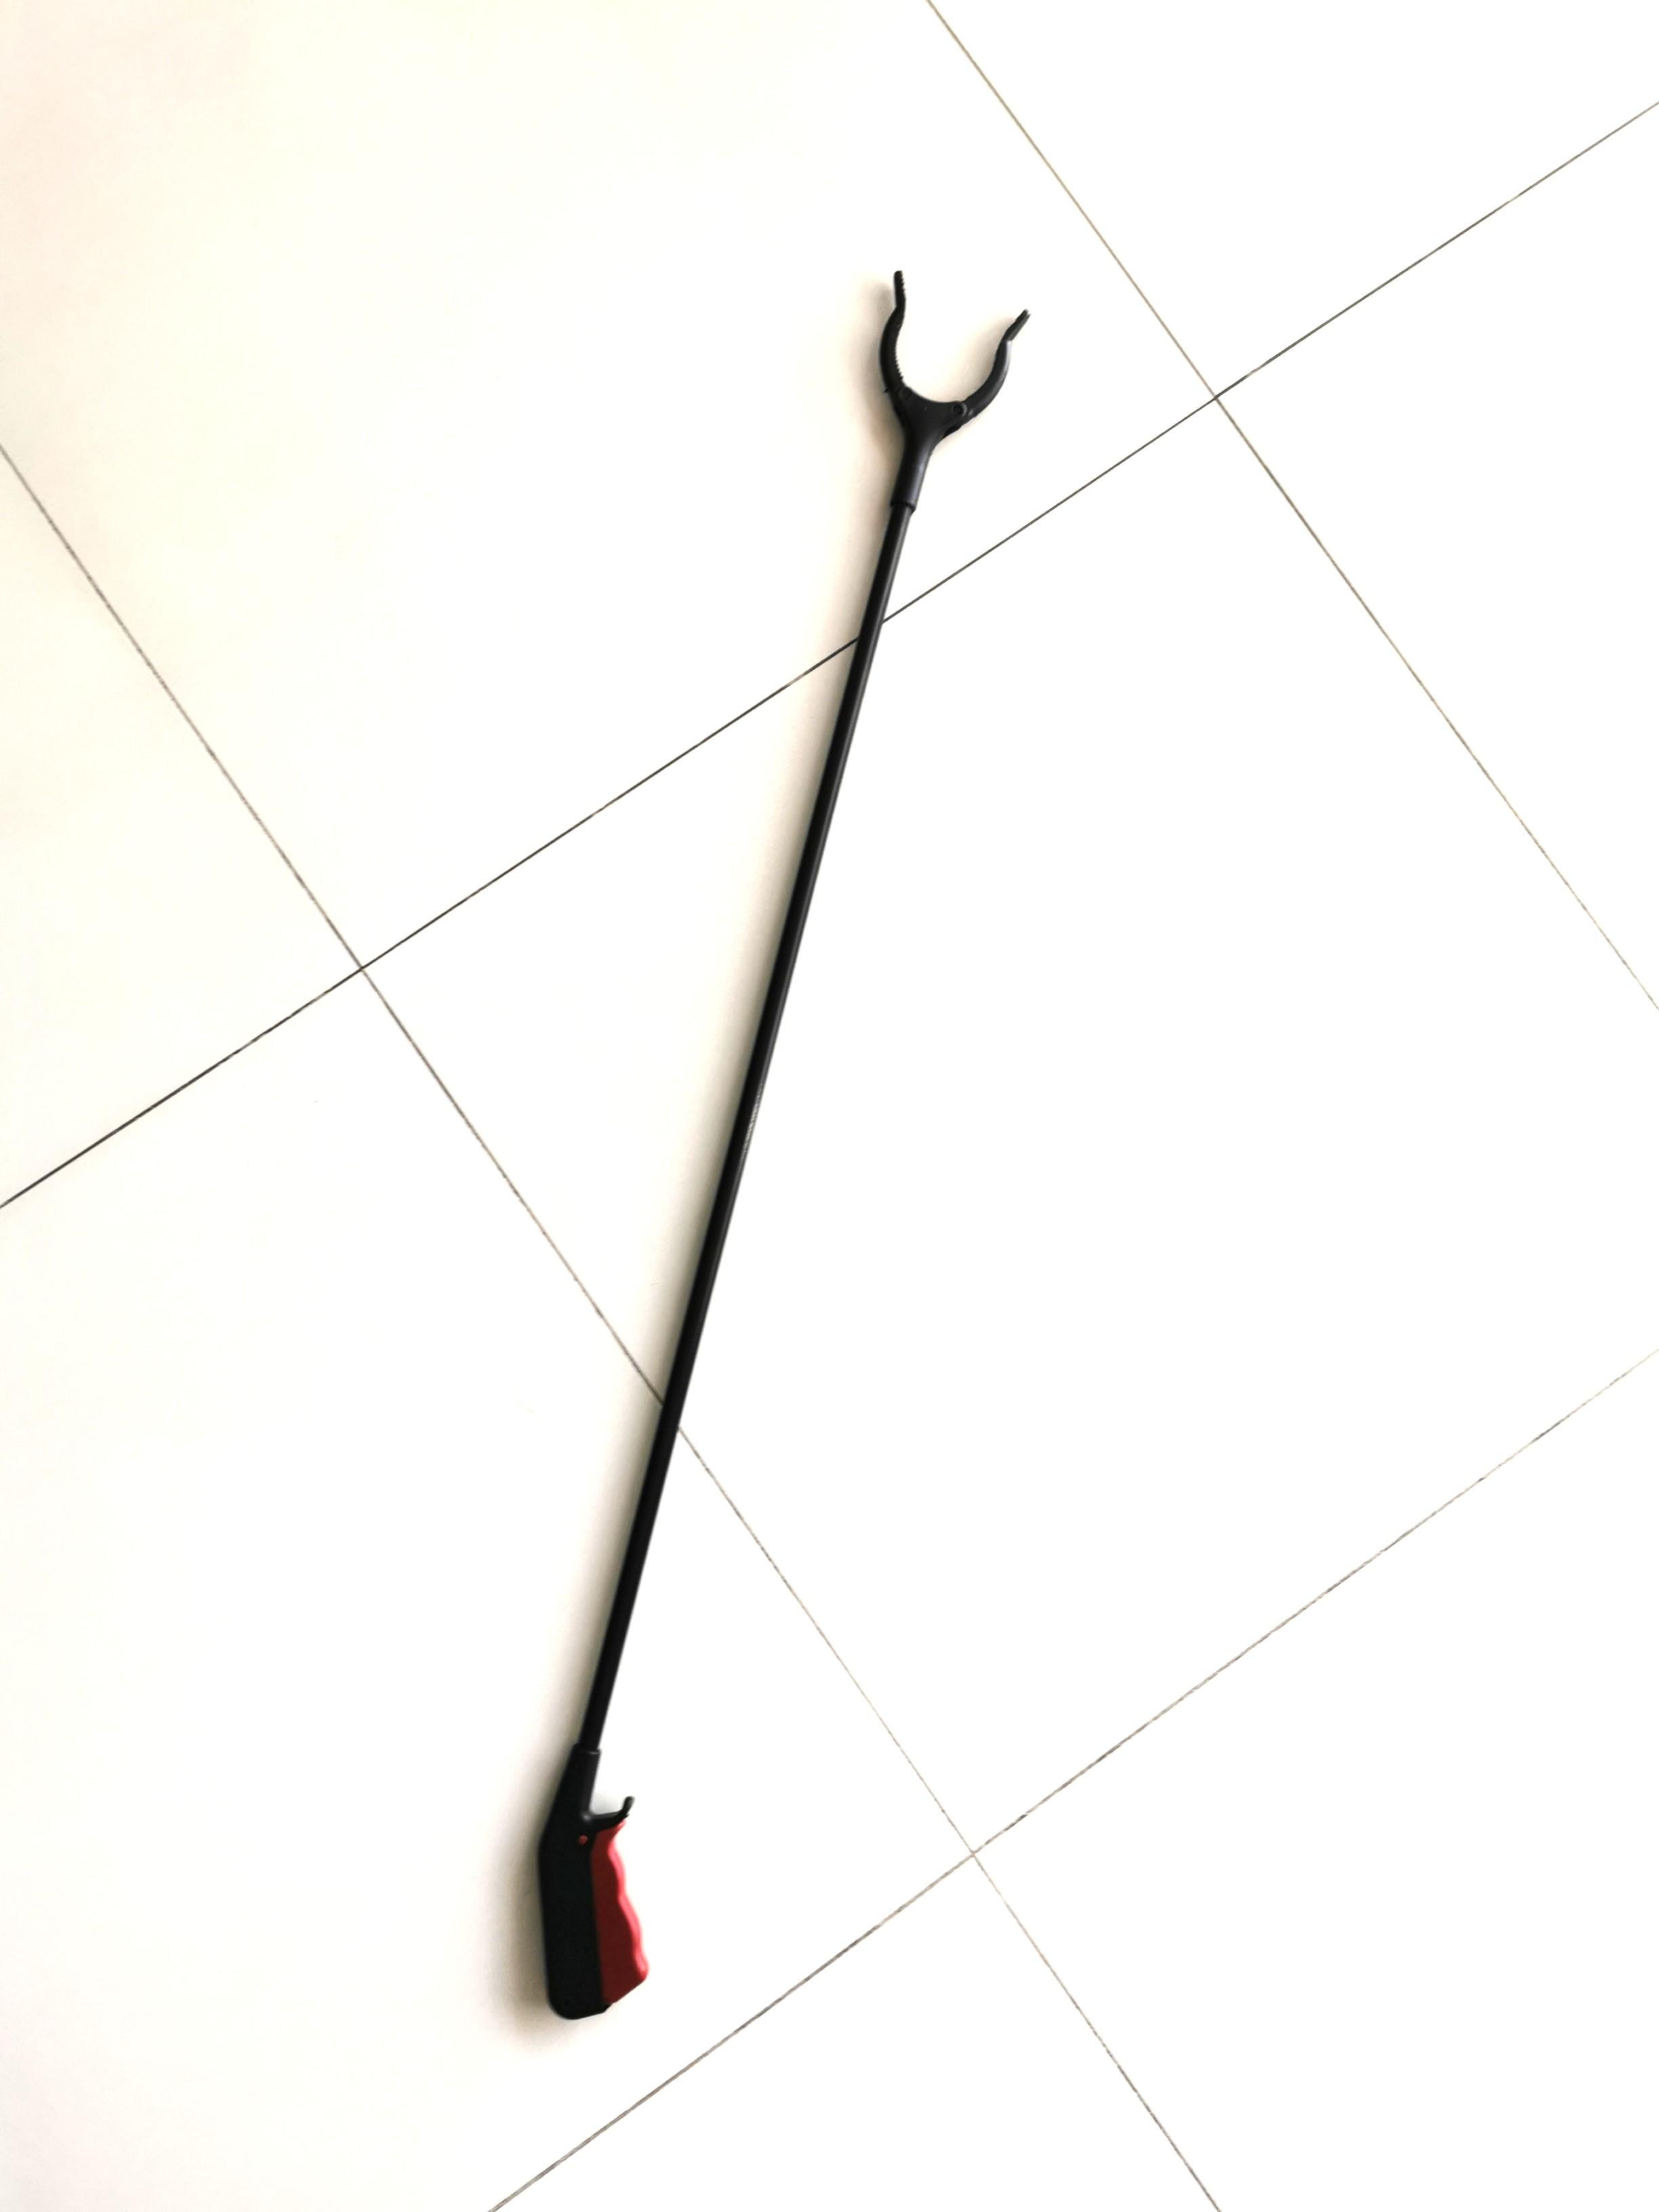 1m 100 Cm Reacher Grabber 1m 100cm, Assistive Devices, Others On Carousell